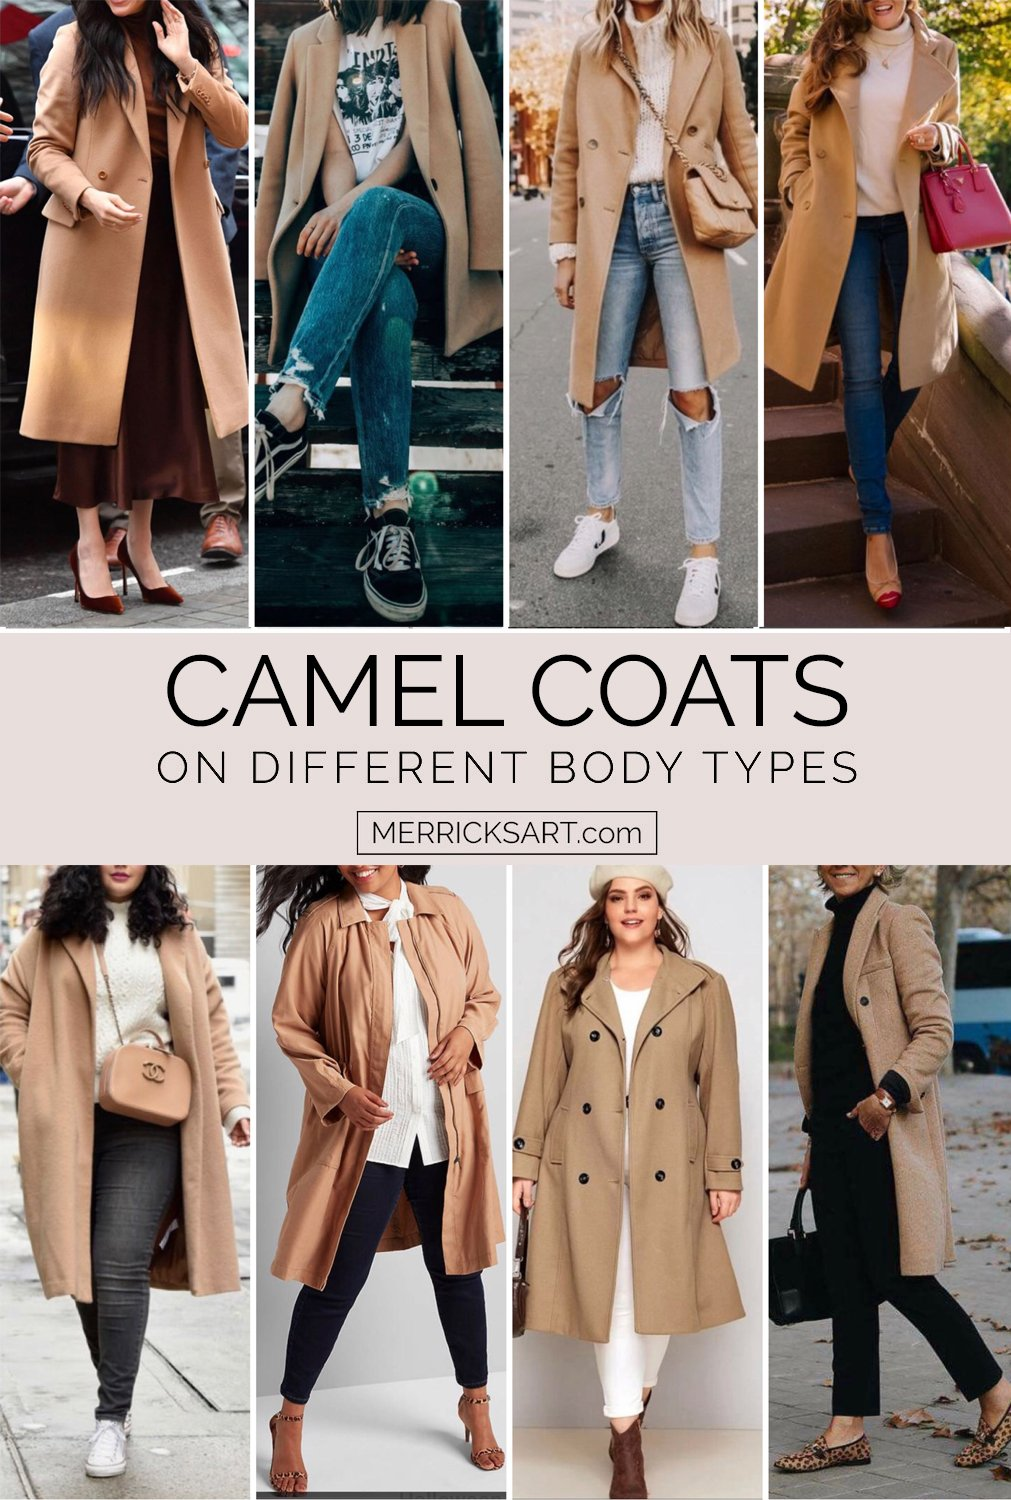 camel coat outfits with different body types